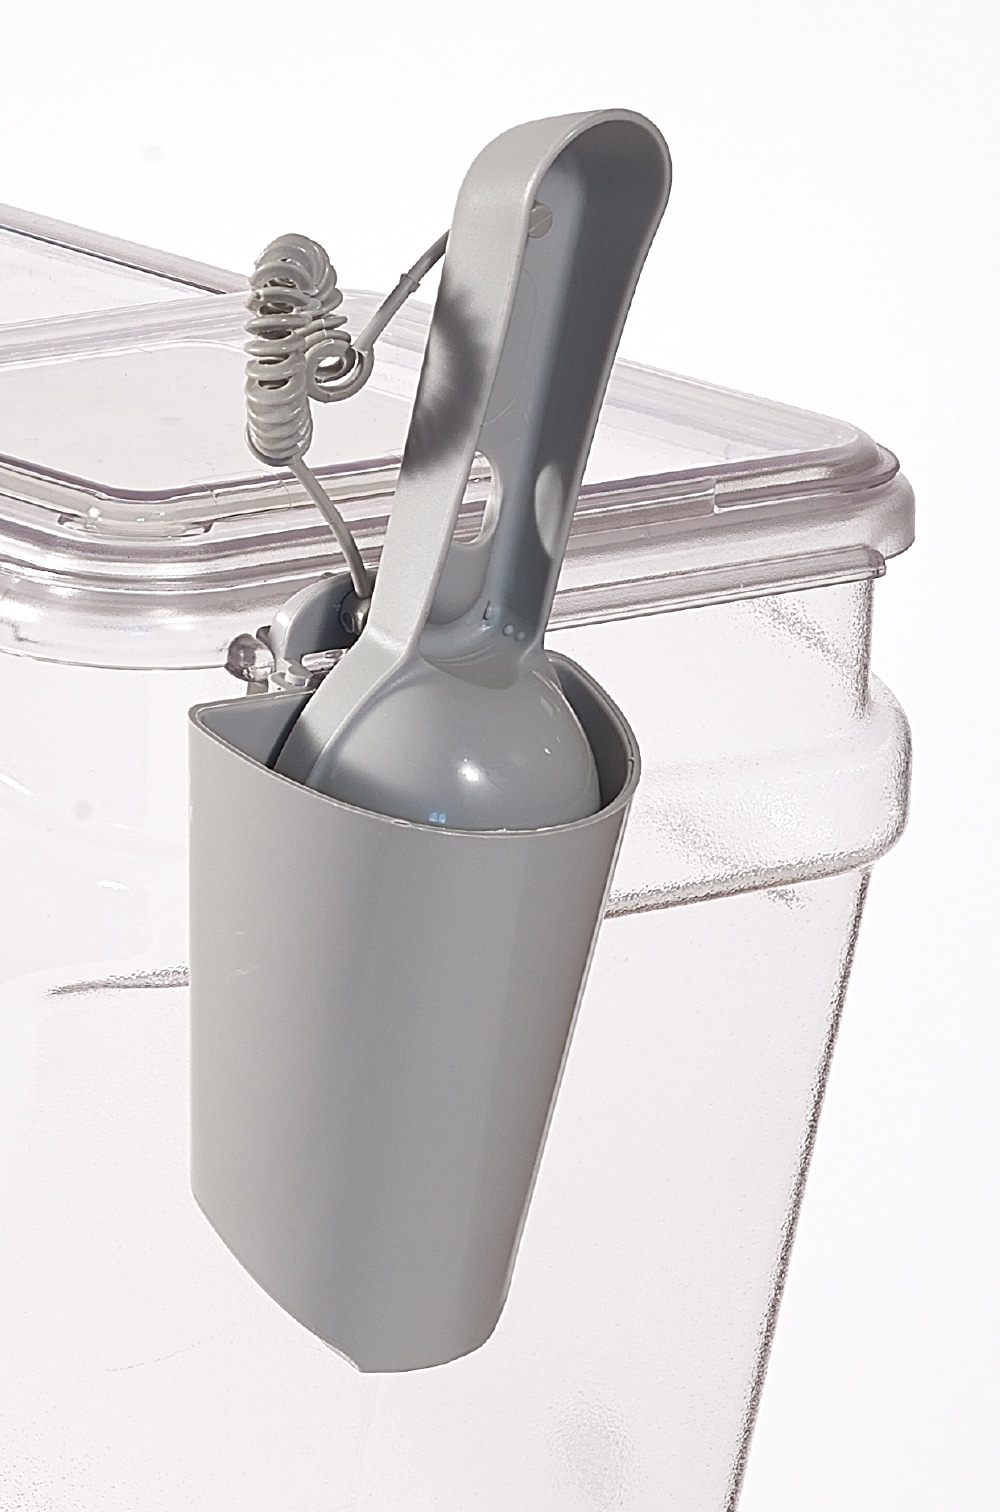 BPA free food scoop plus holder